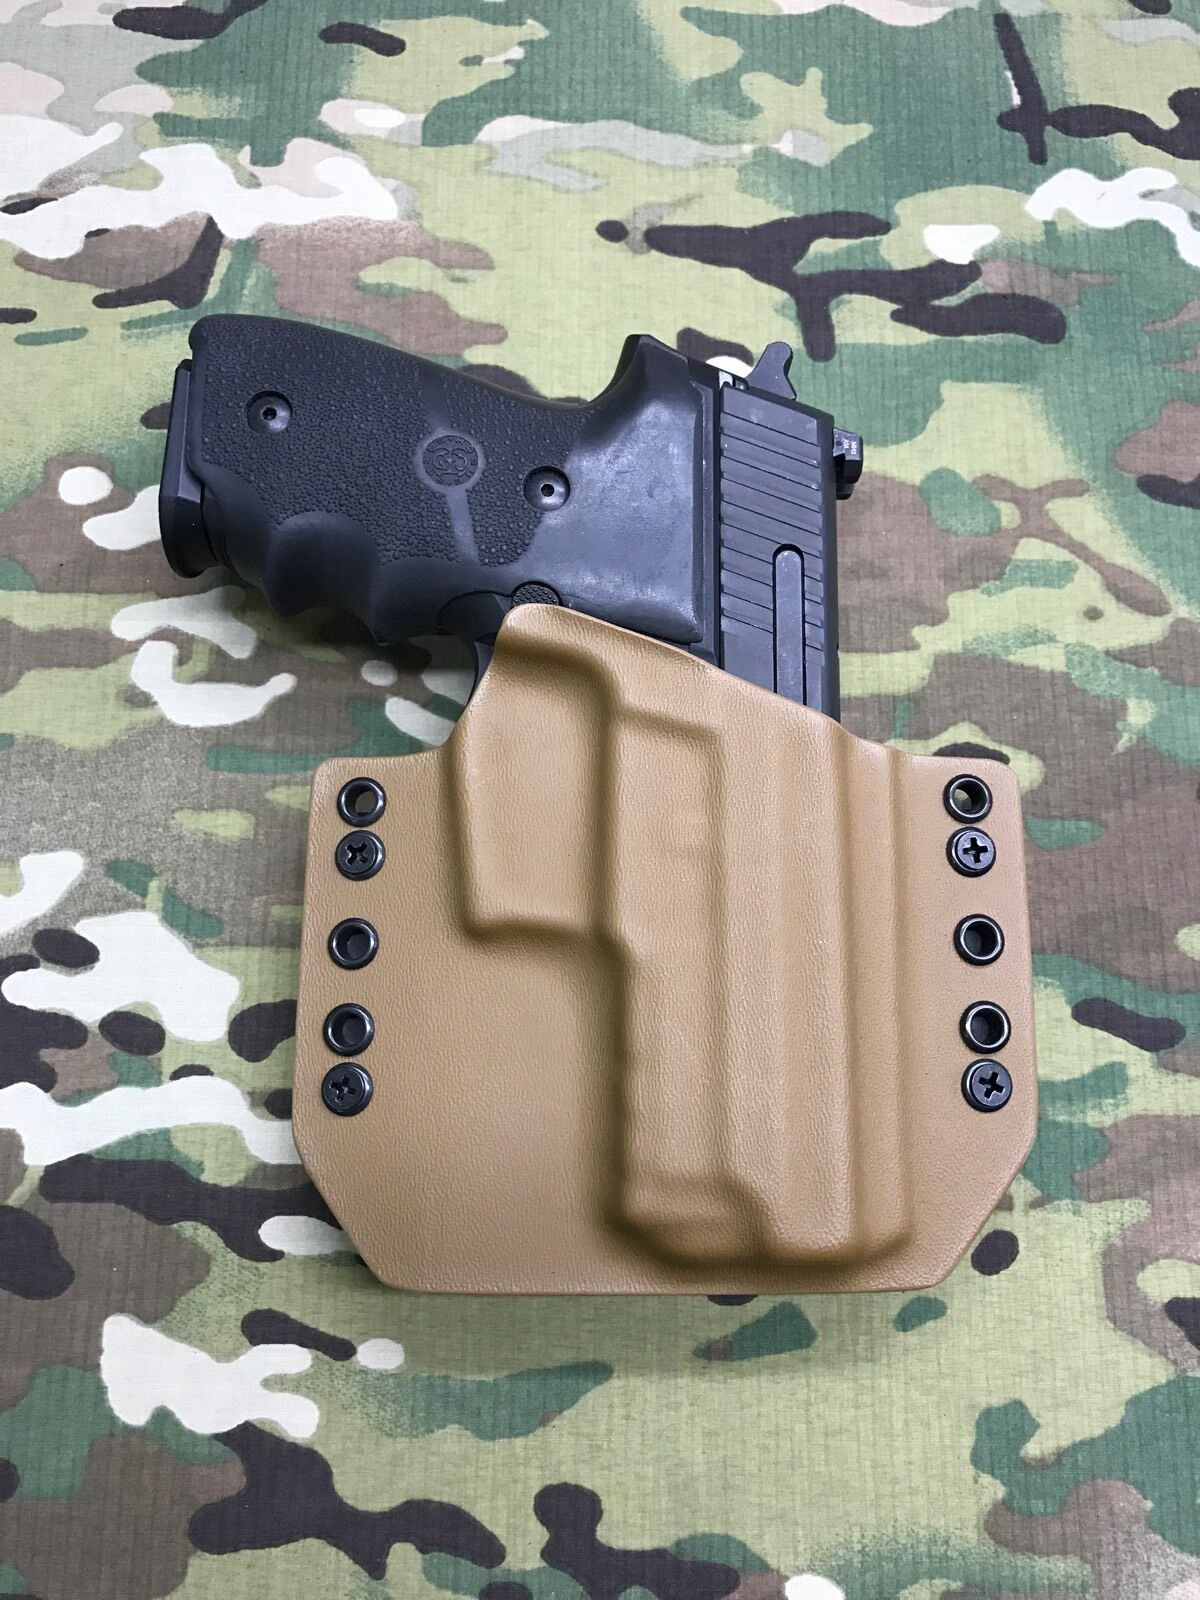 Coyote Tan Kydex Holster Sig Sauer P229R